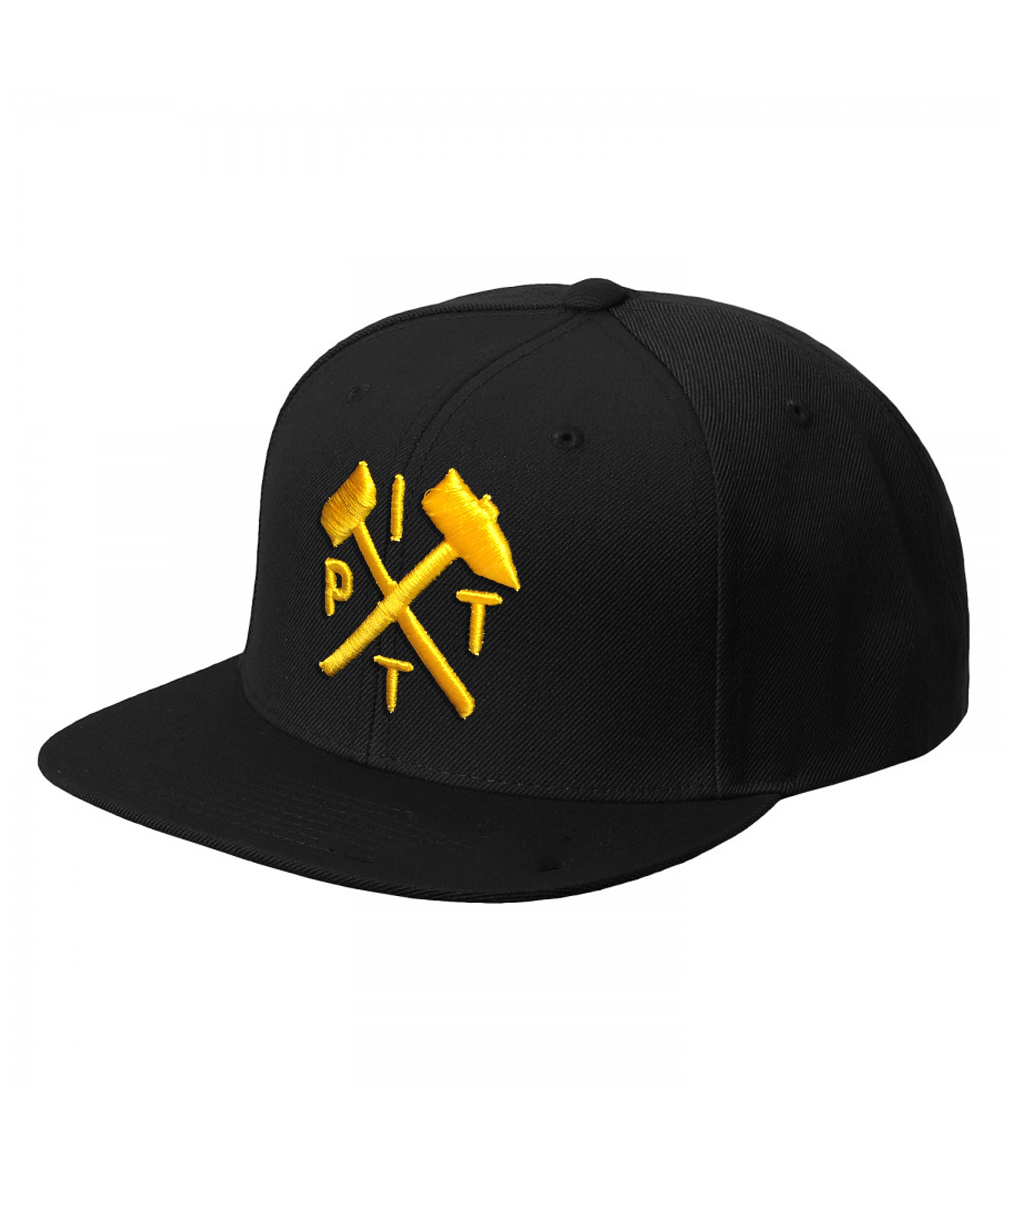 Hammers_hat_front